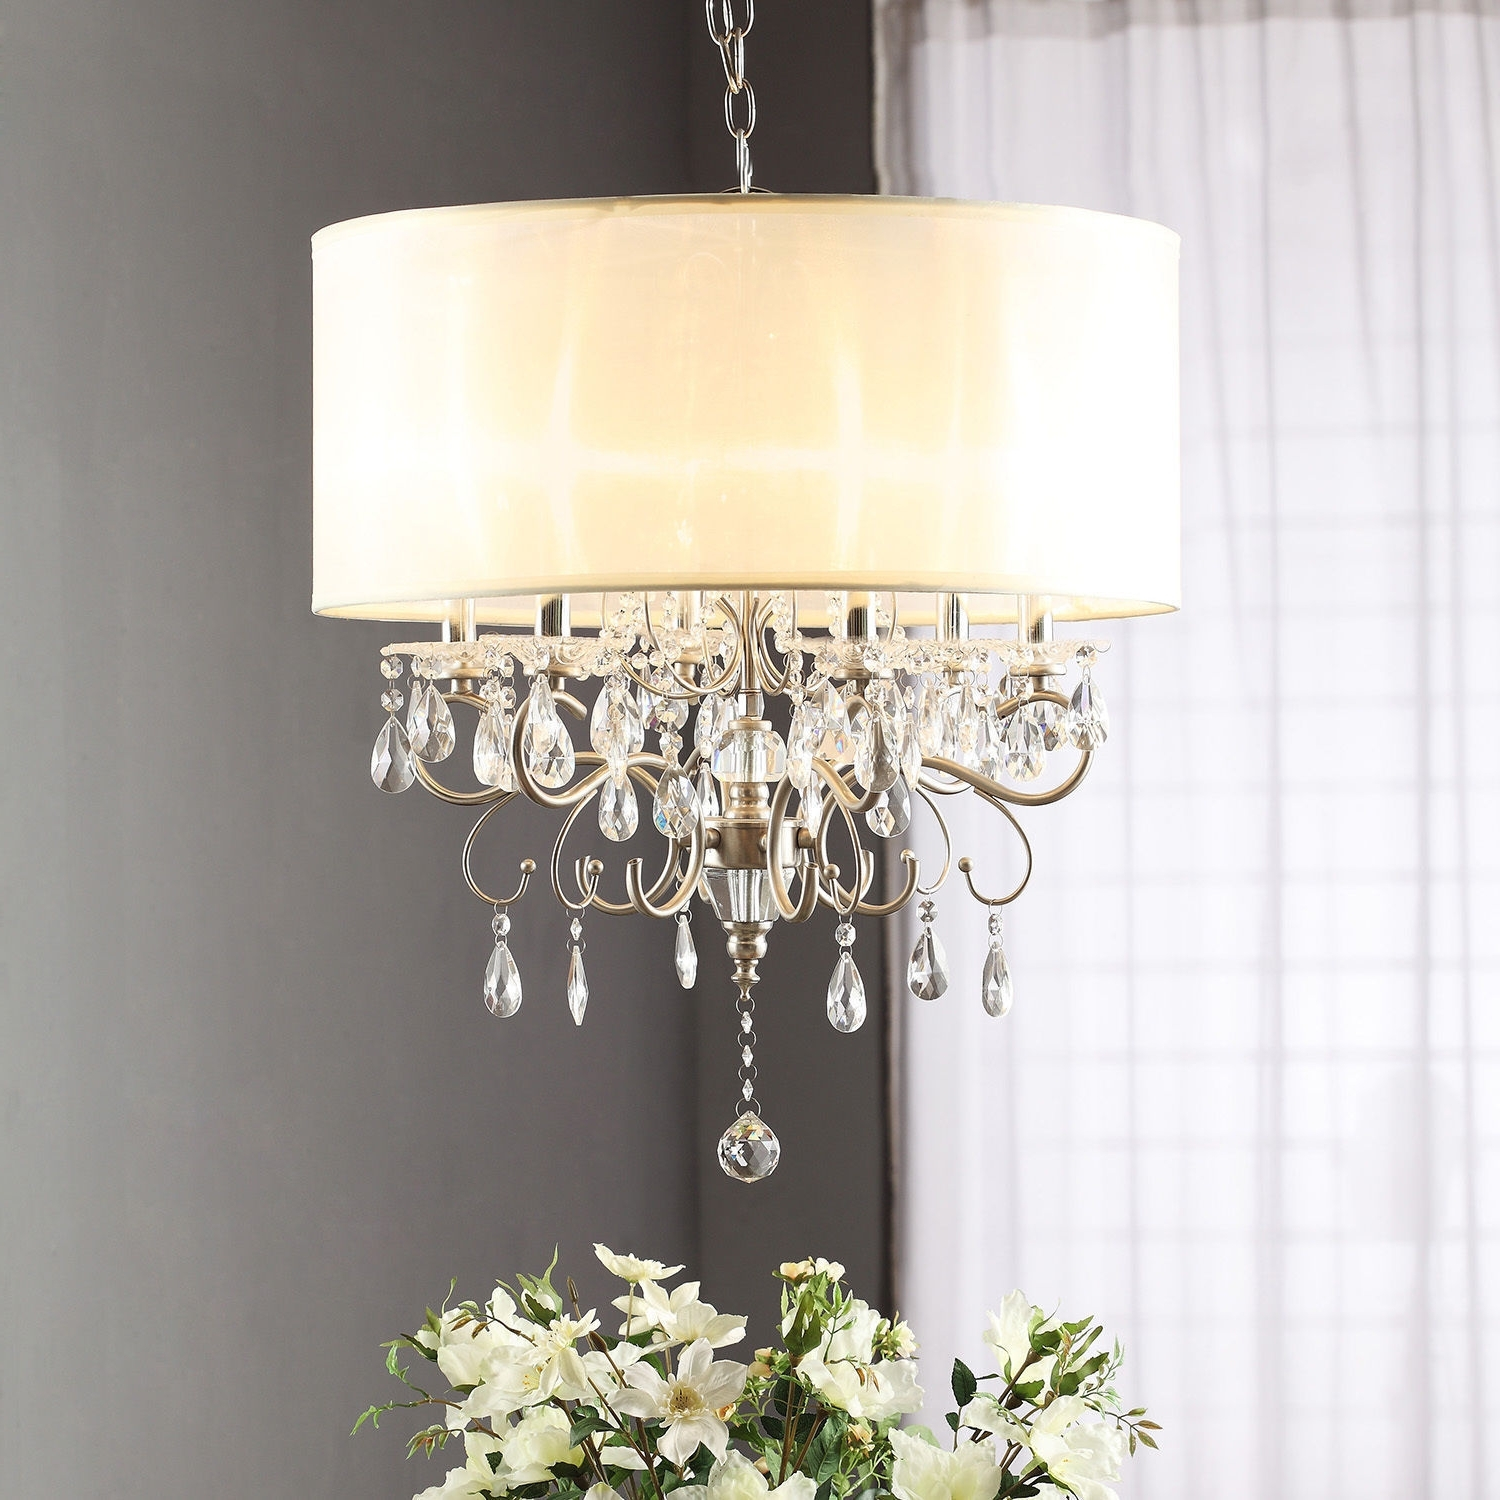 Widely Used Cream Chandelier Lights Within Drum Shade Chandelier With Crystals Brizzo Lighting Brass (View 7 of 20)